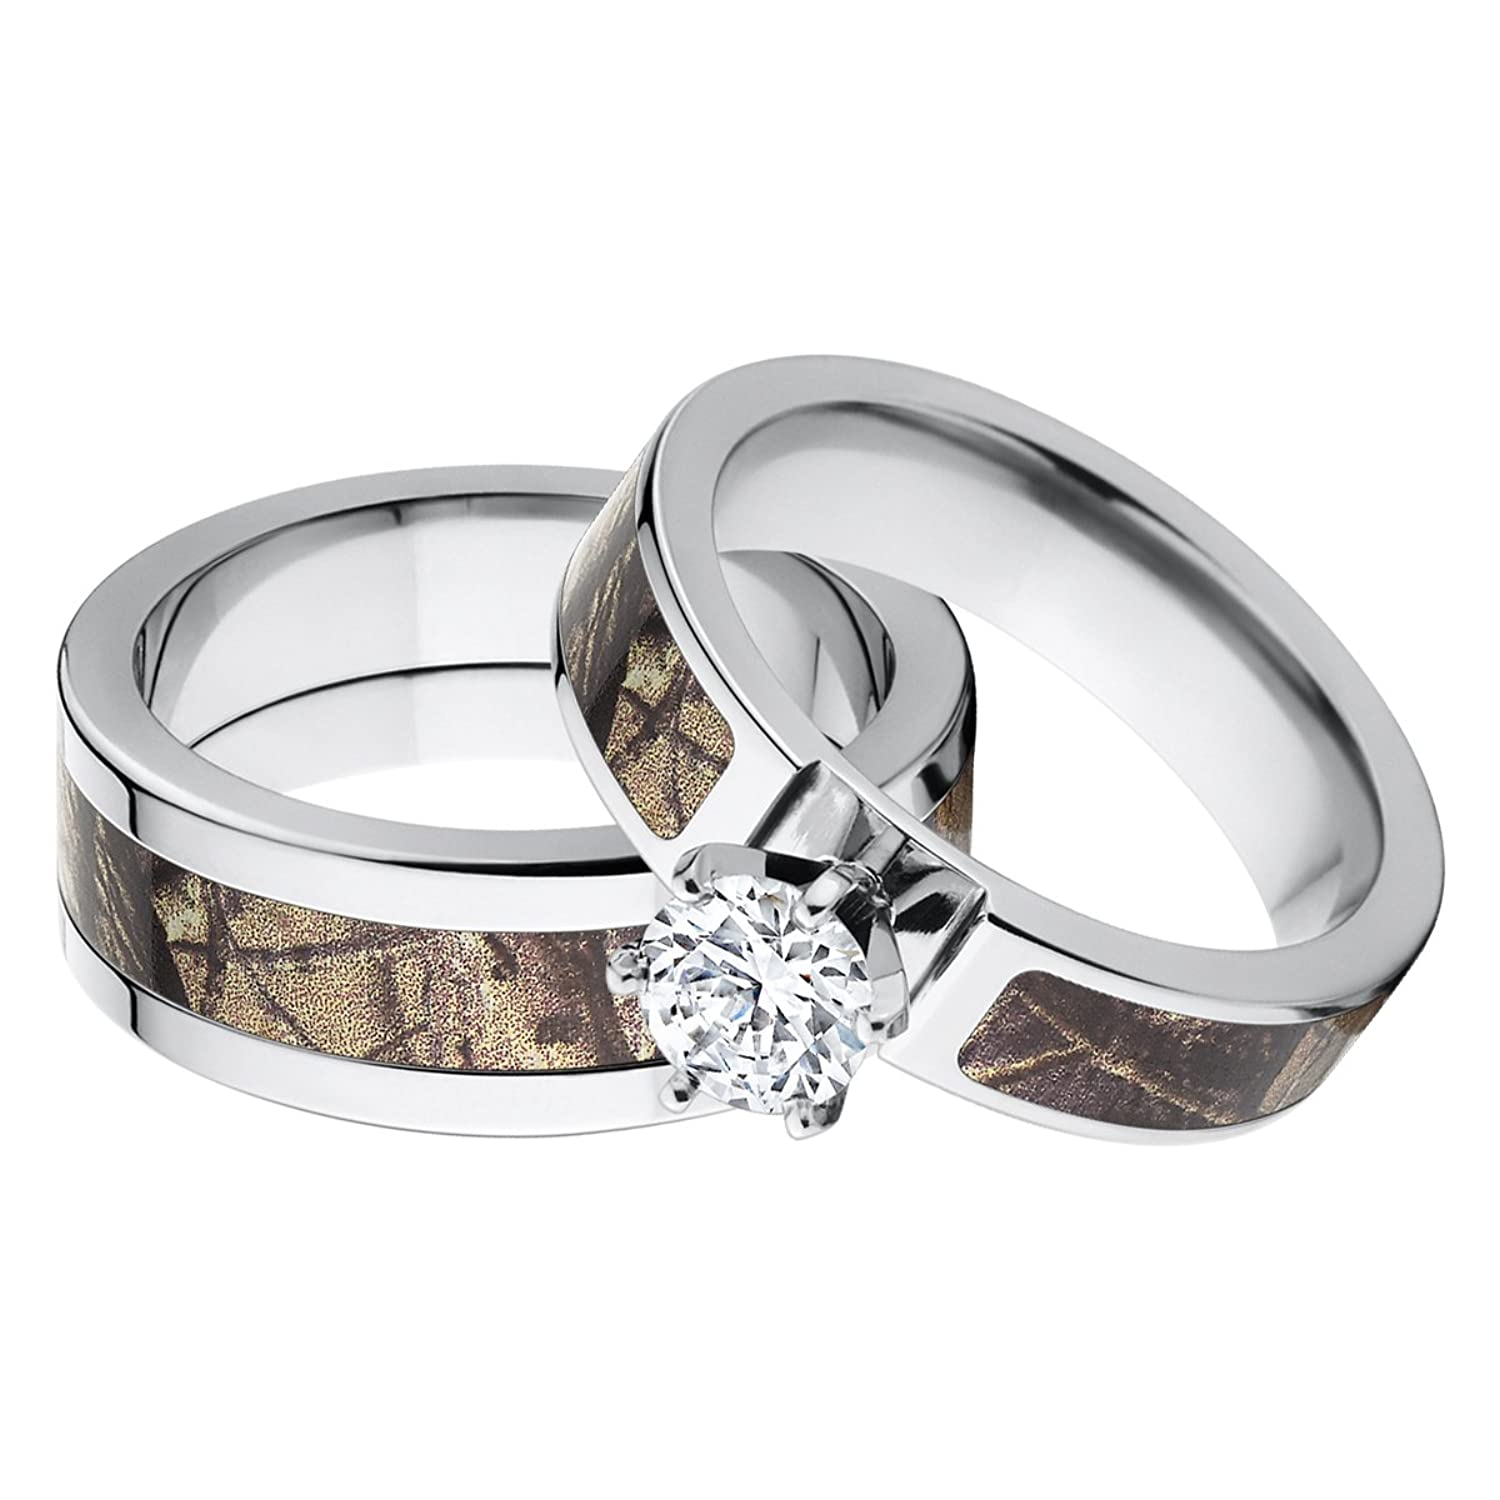 amazoncom his and hers matching realtree ap camouflage wedding ring set jewelry - Camo Wedding Rings For Women